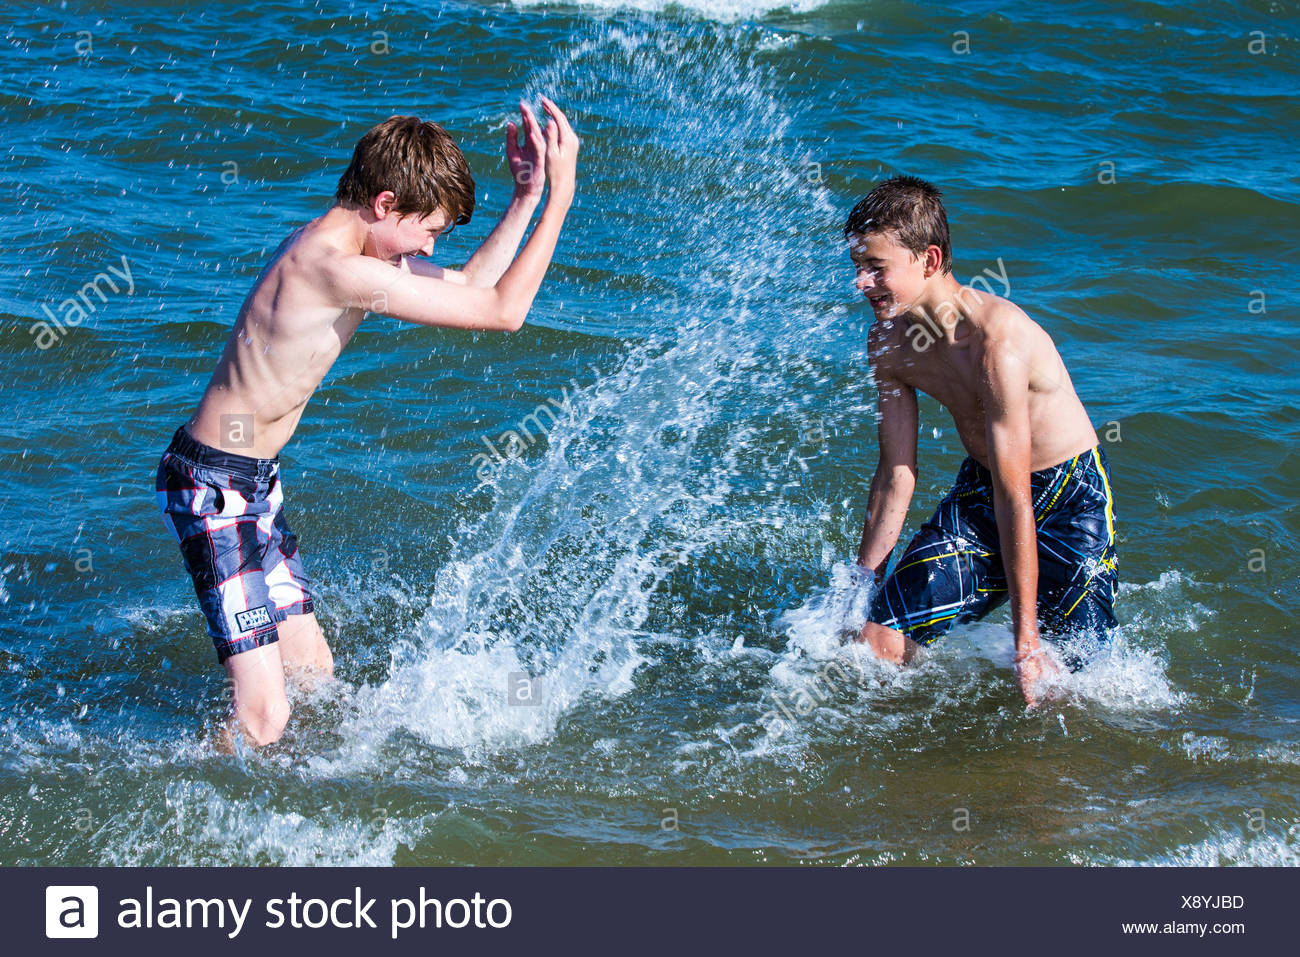 Two boys splashing water at each other in the ocean - Stock Image